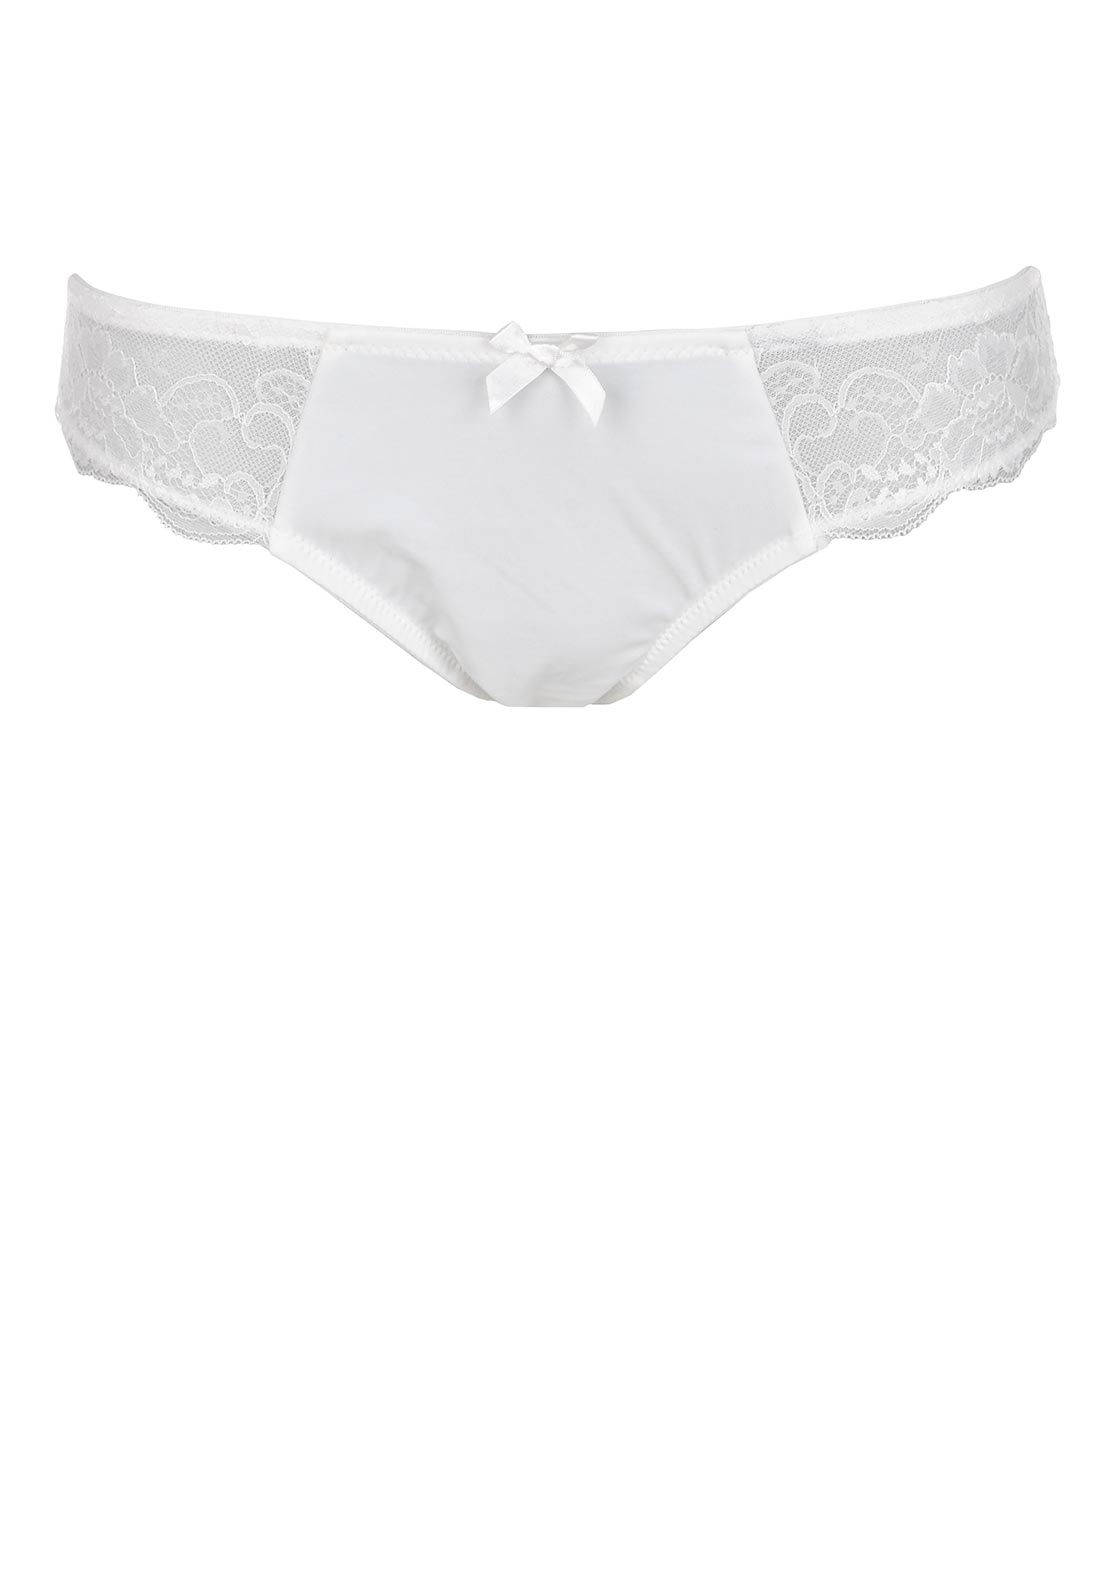 Signature by After Eden Florence Half Lace Brief, Creamy White